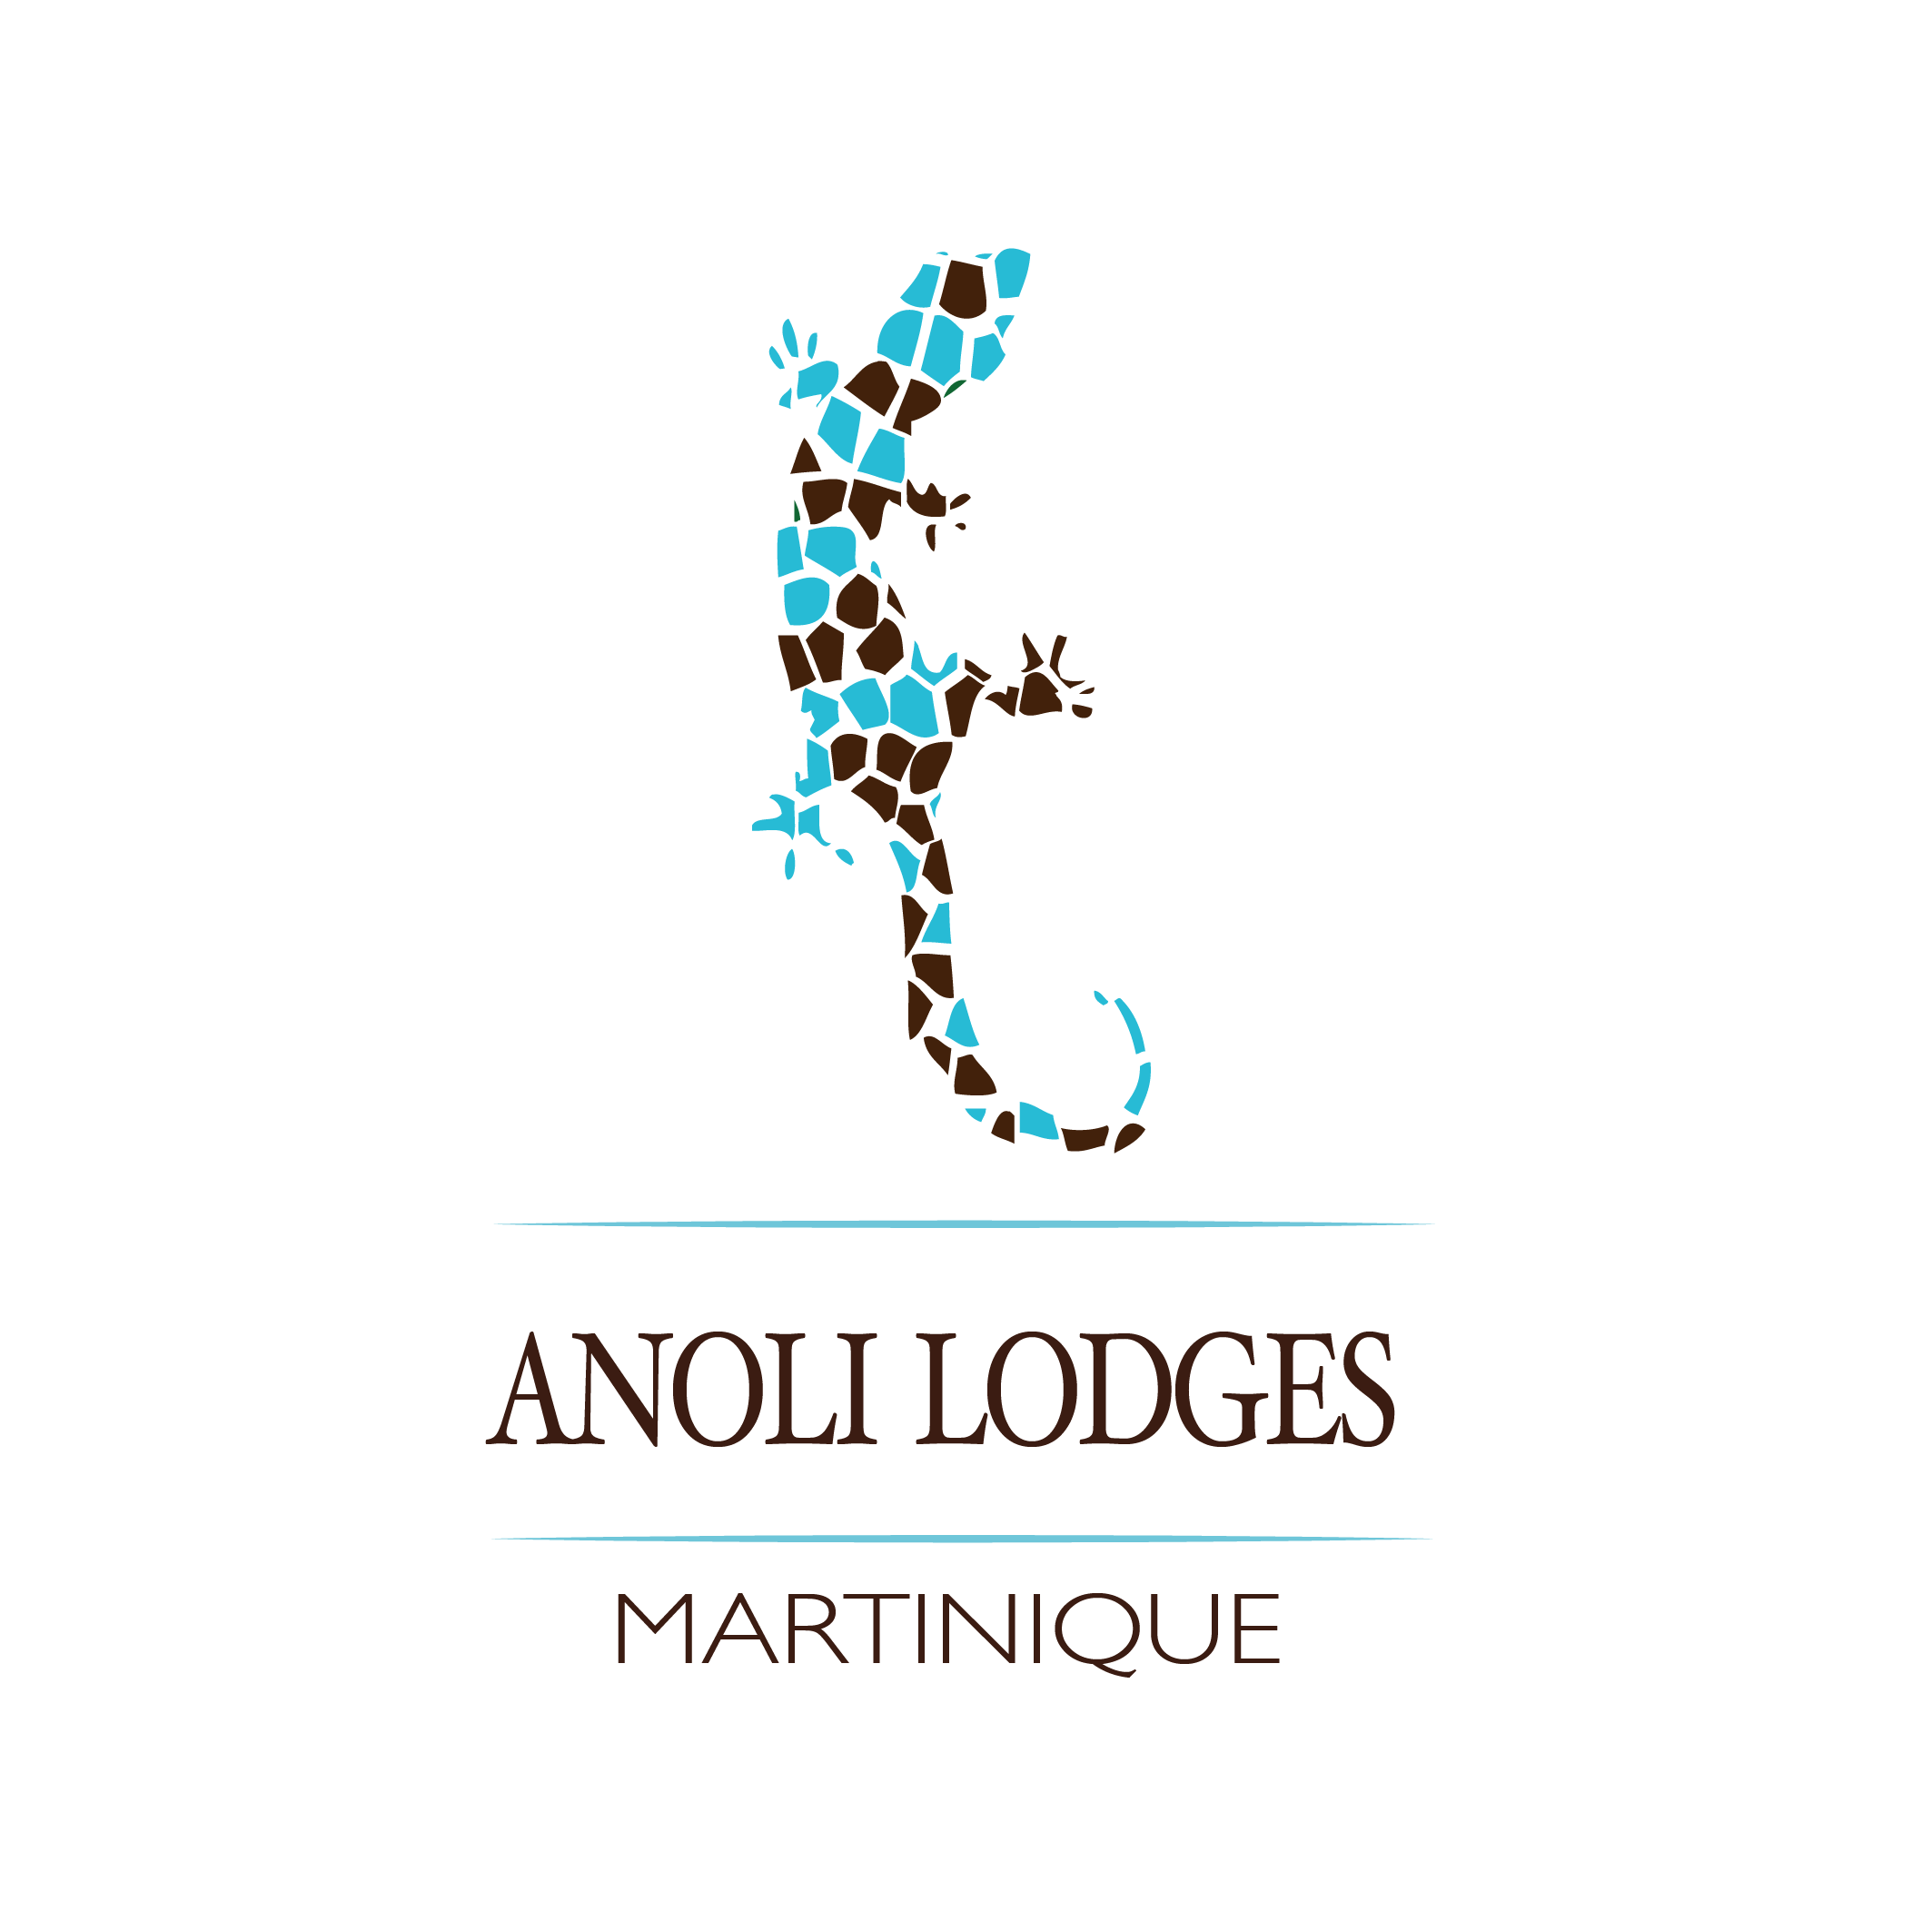 Anoli Lodges